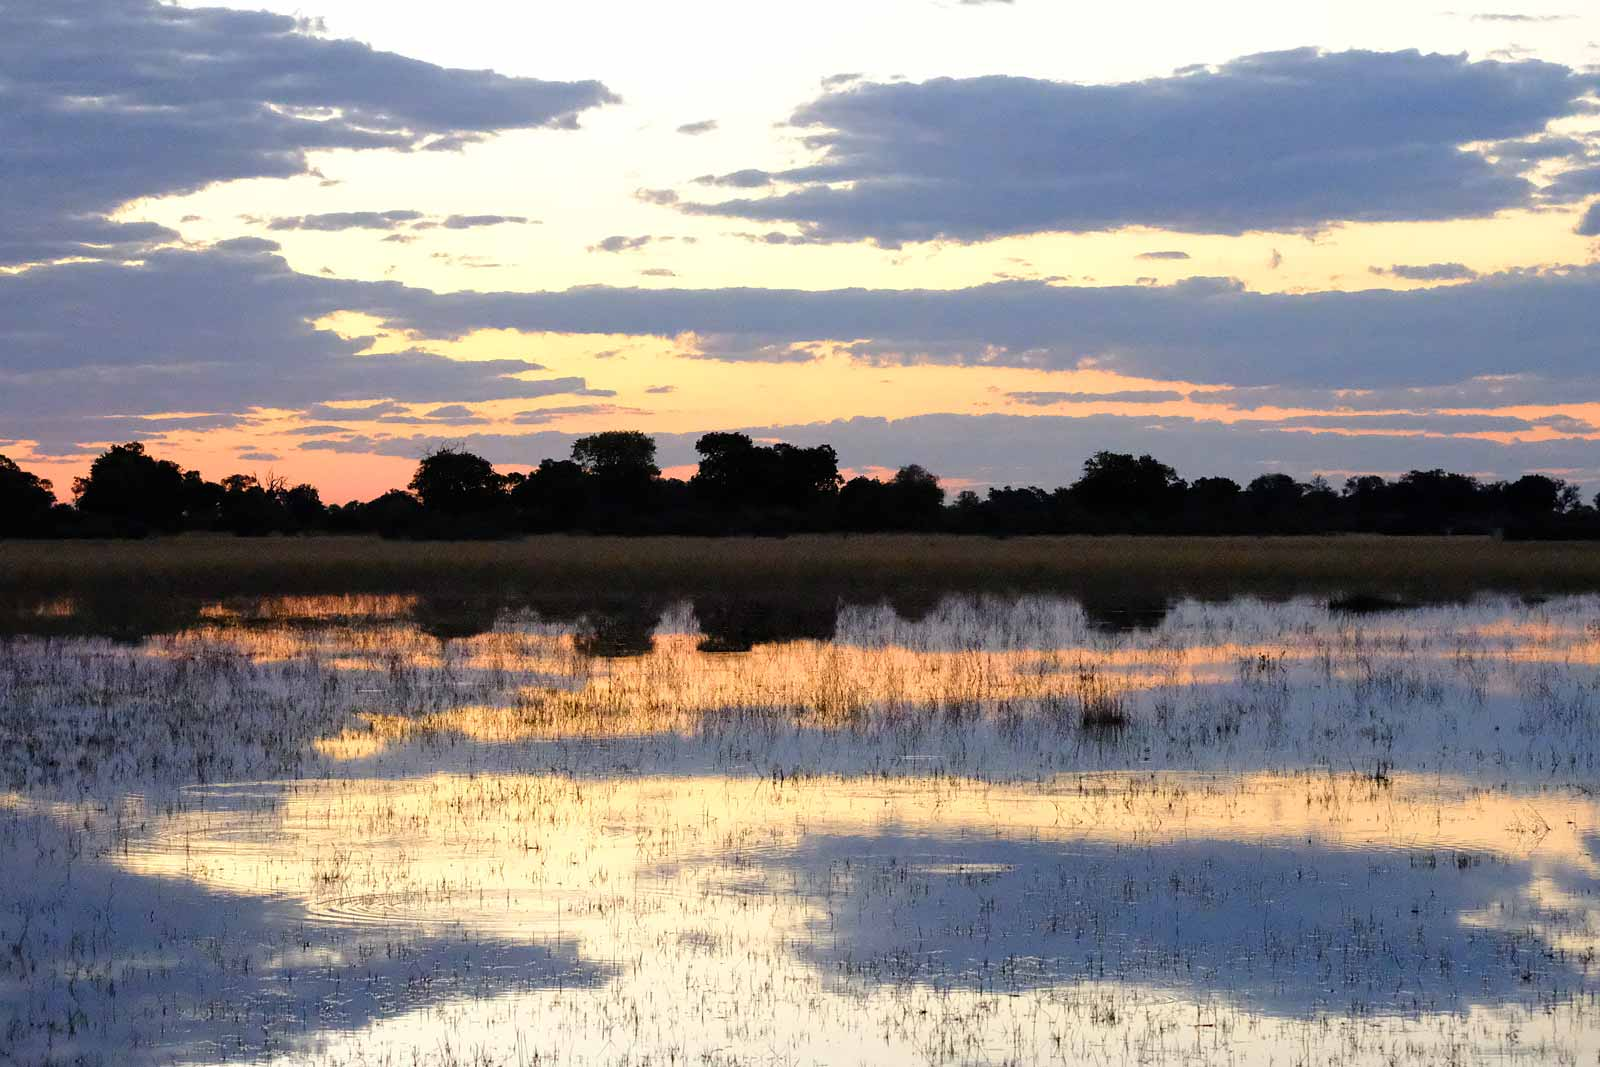 Sunset in the Okavango Delta in Botswana